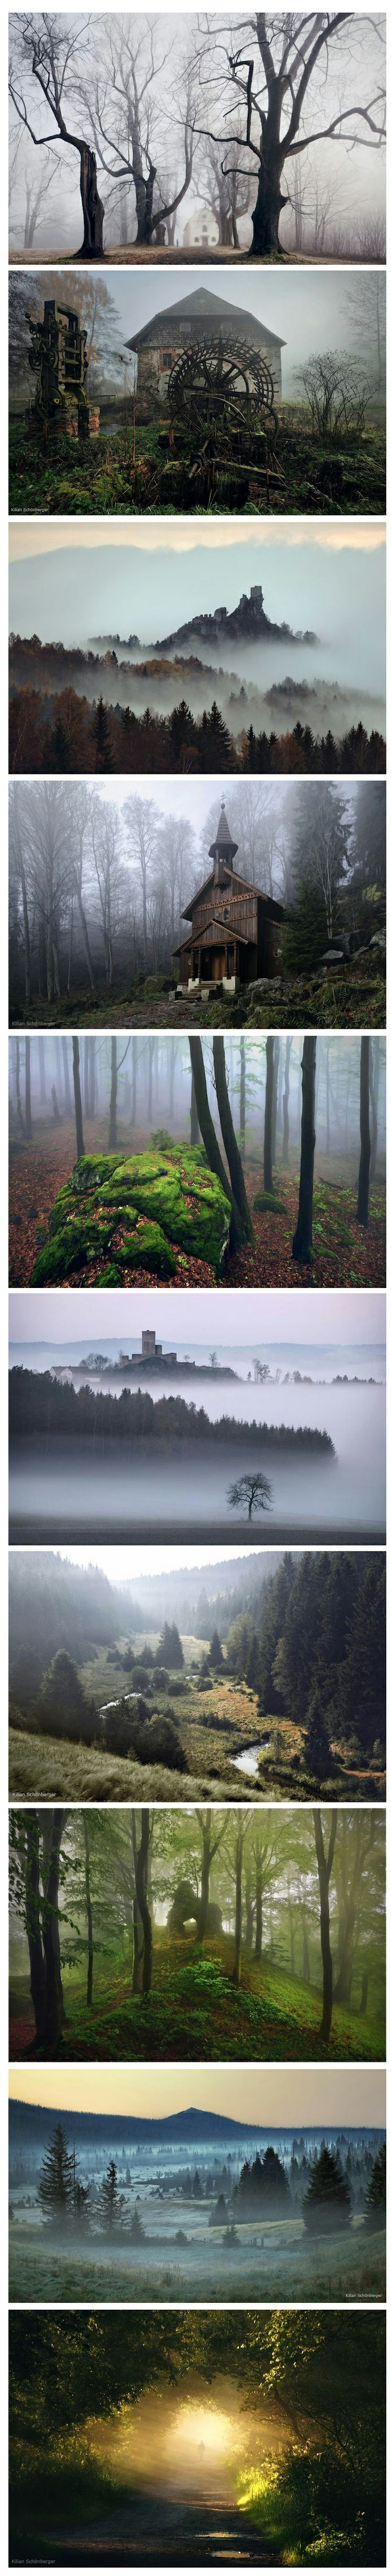 German photographer Killian Schoenberger has utilized moody landscape and old stories of his childhood homeland to create a series of photographic illustrations inspired by the fairy tales of the Brothers Grimm. Shot in remote rural areas of Middle Europe dominated by images of haunting fog, gnarled trees and dark homes you hope are abandoned. His exemplary work as a photographer is made even more impressive by the fact that he is colorblind.: